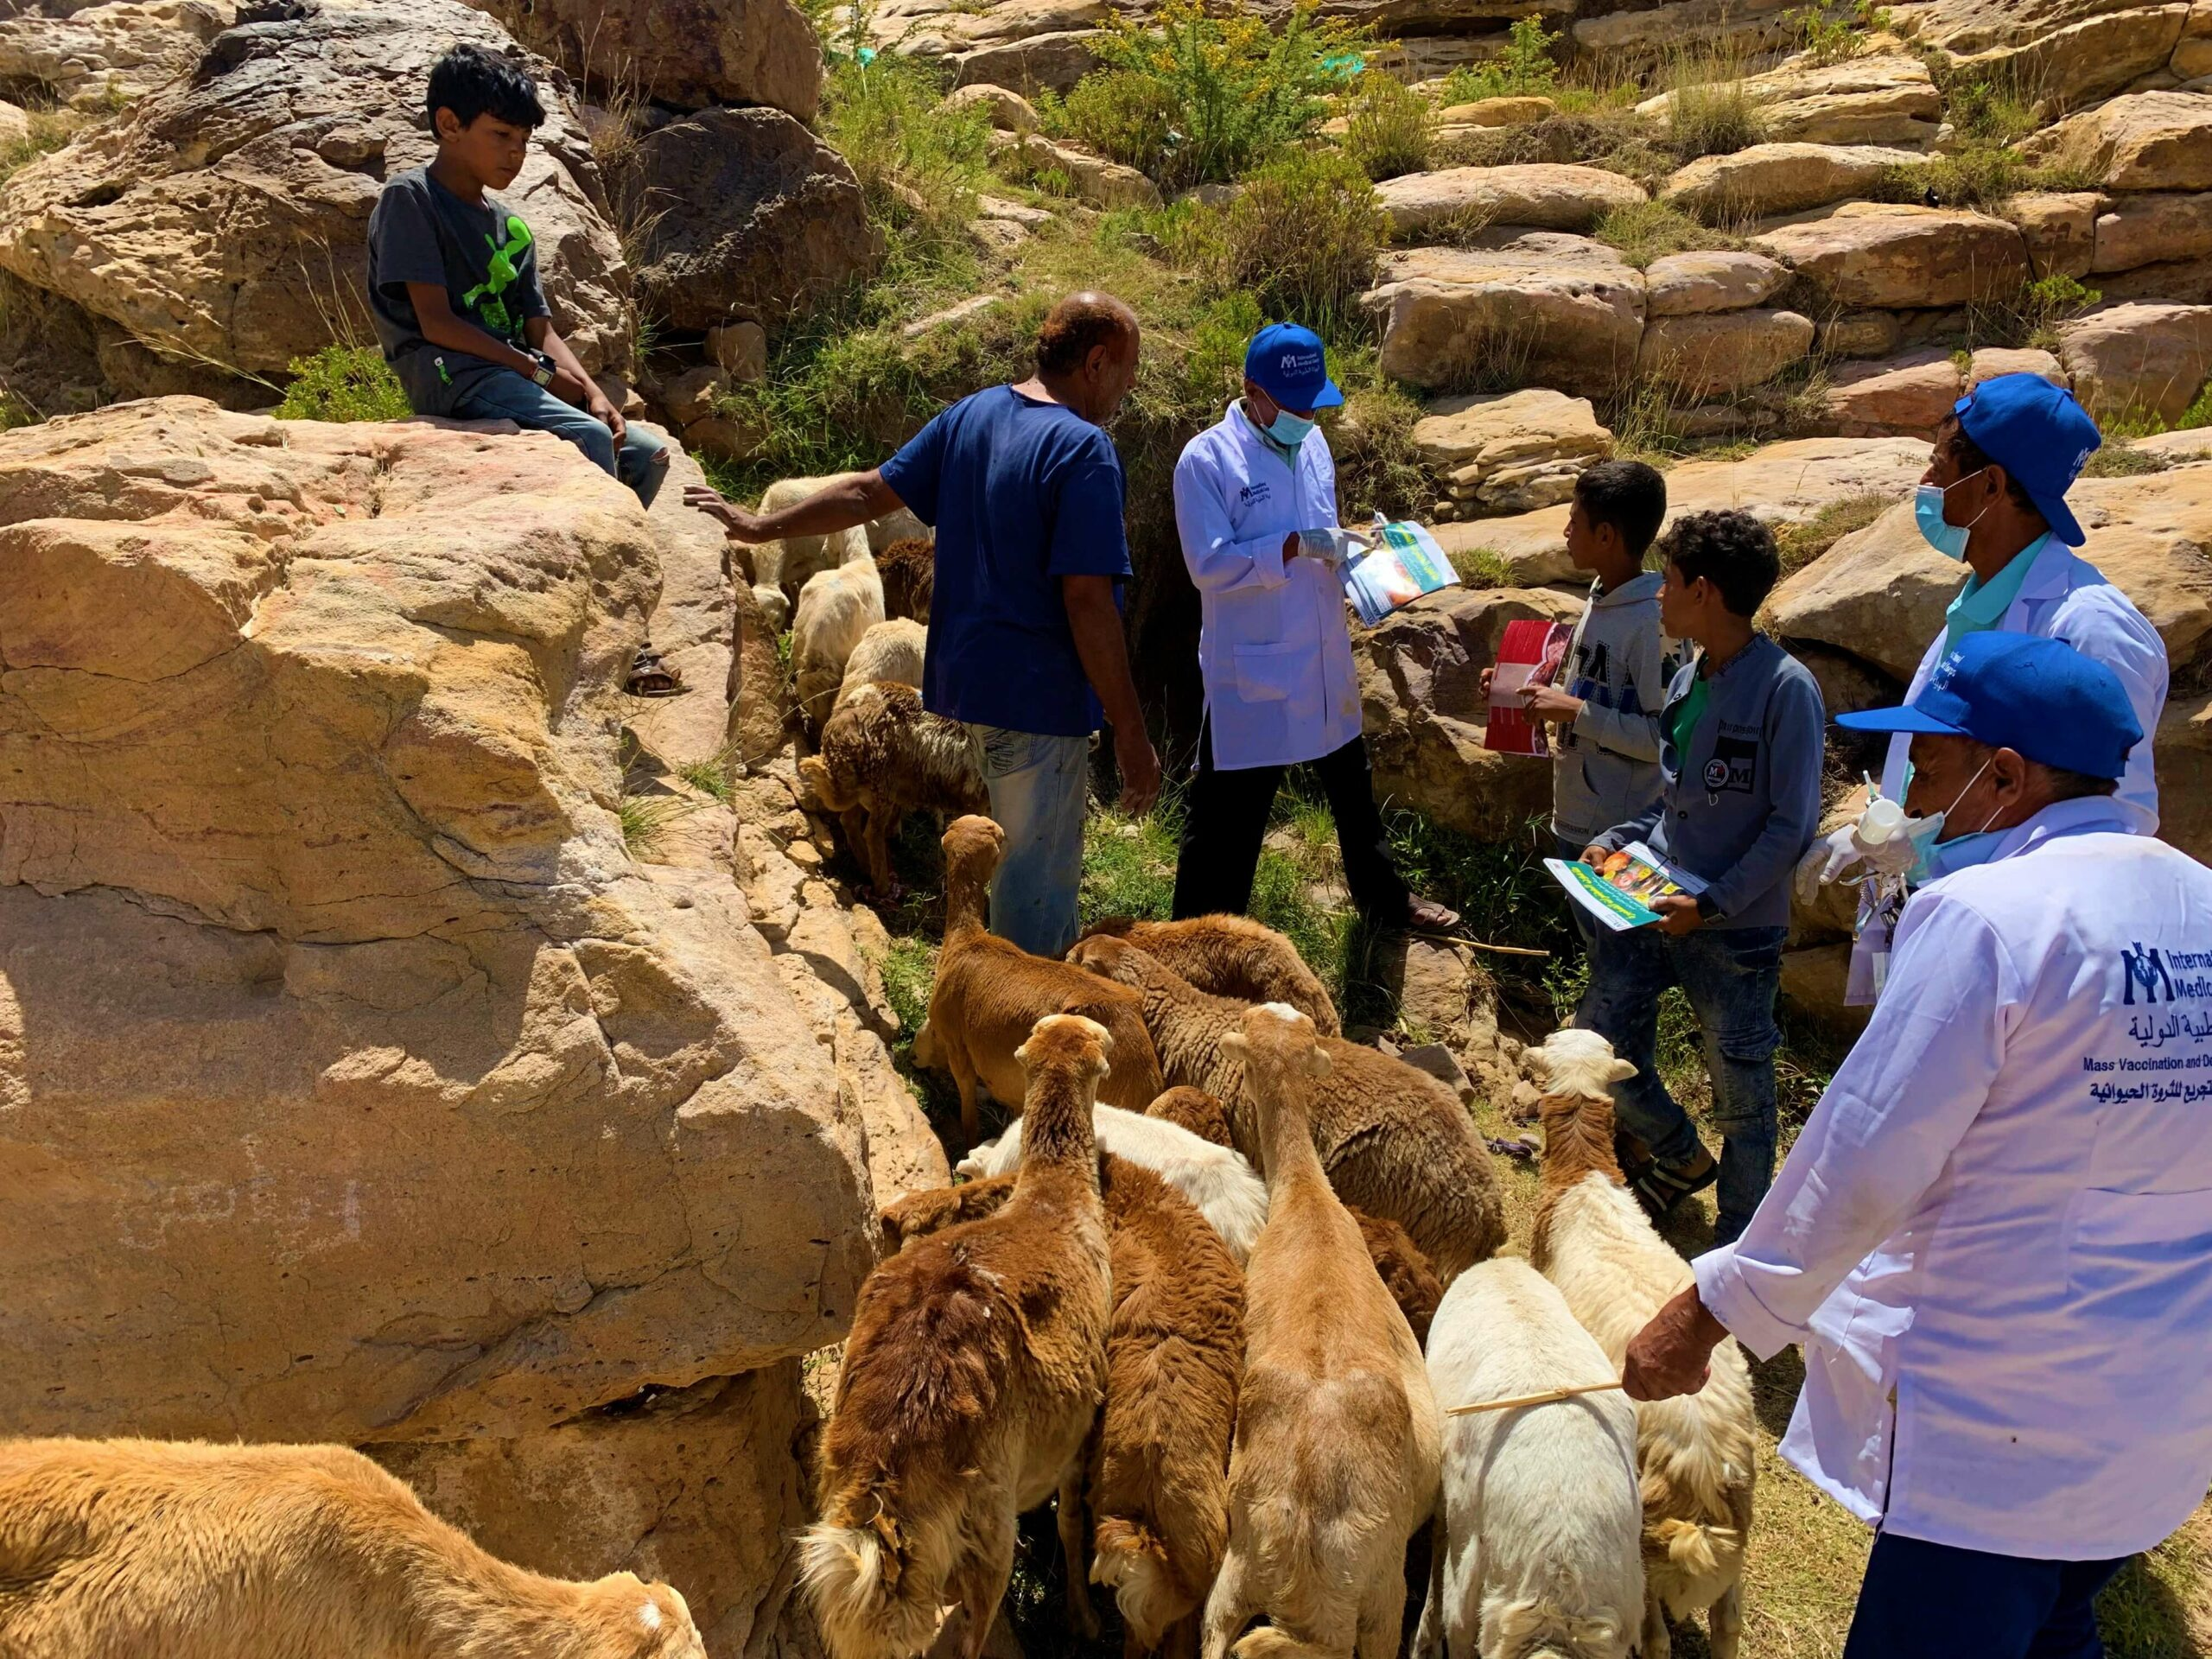 Our team in the Al Hussein district of Yemen has partnered with the Ministry of Agriculture to vaccinate local livestock.